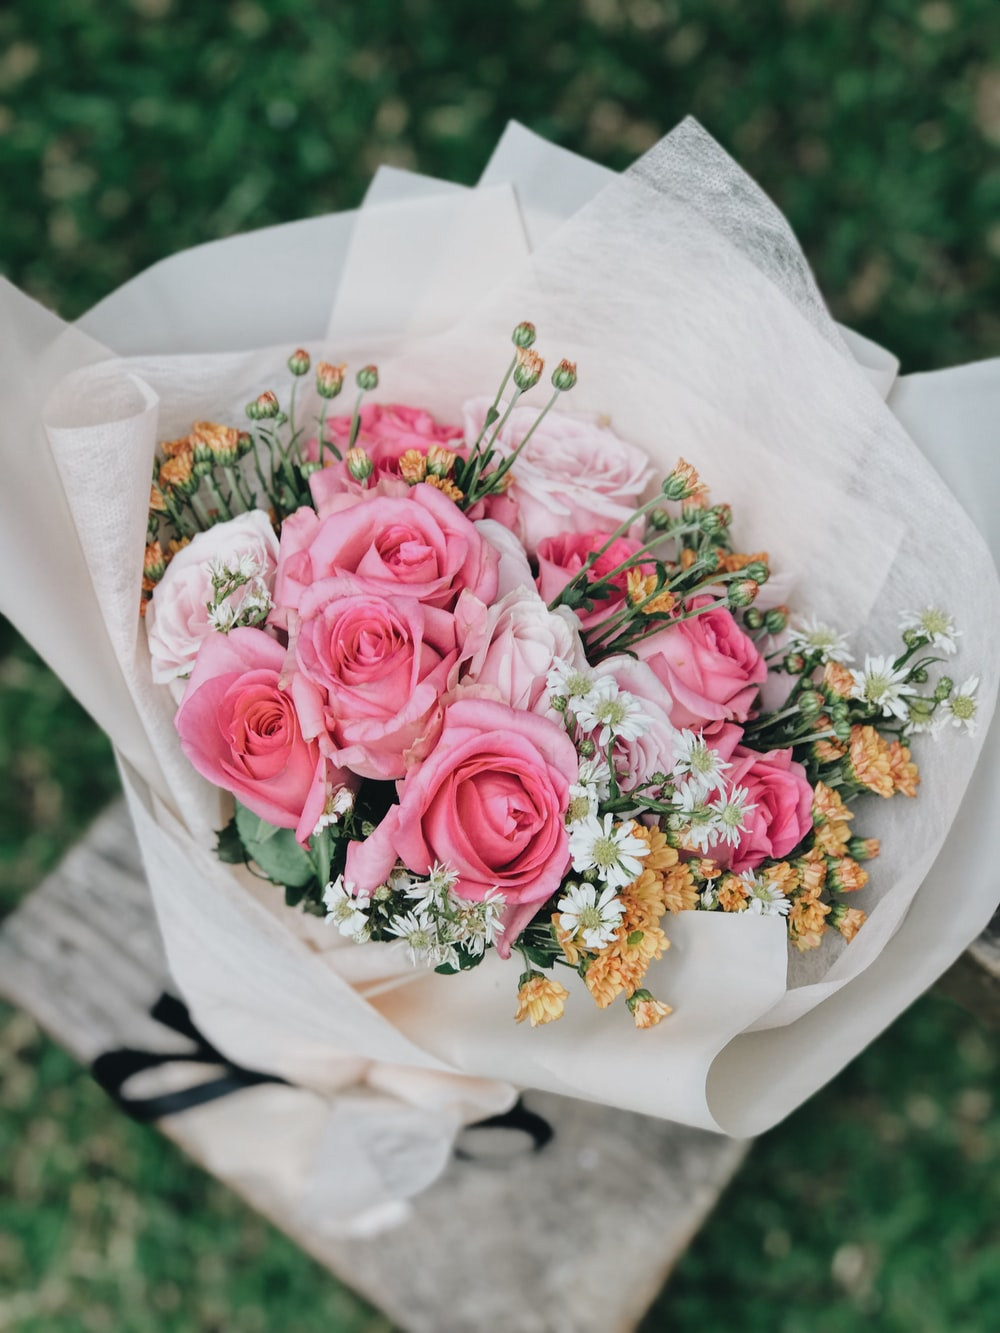 500 bouquet pictures hd download free images on unsplash pink and white rose bouquet izmirmasajfo